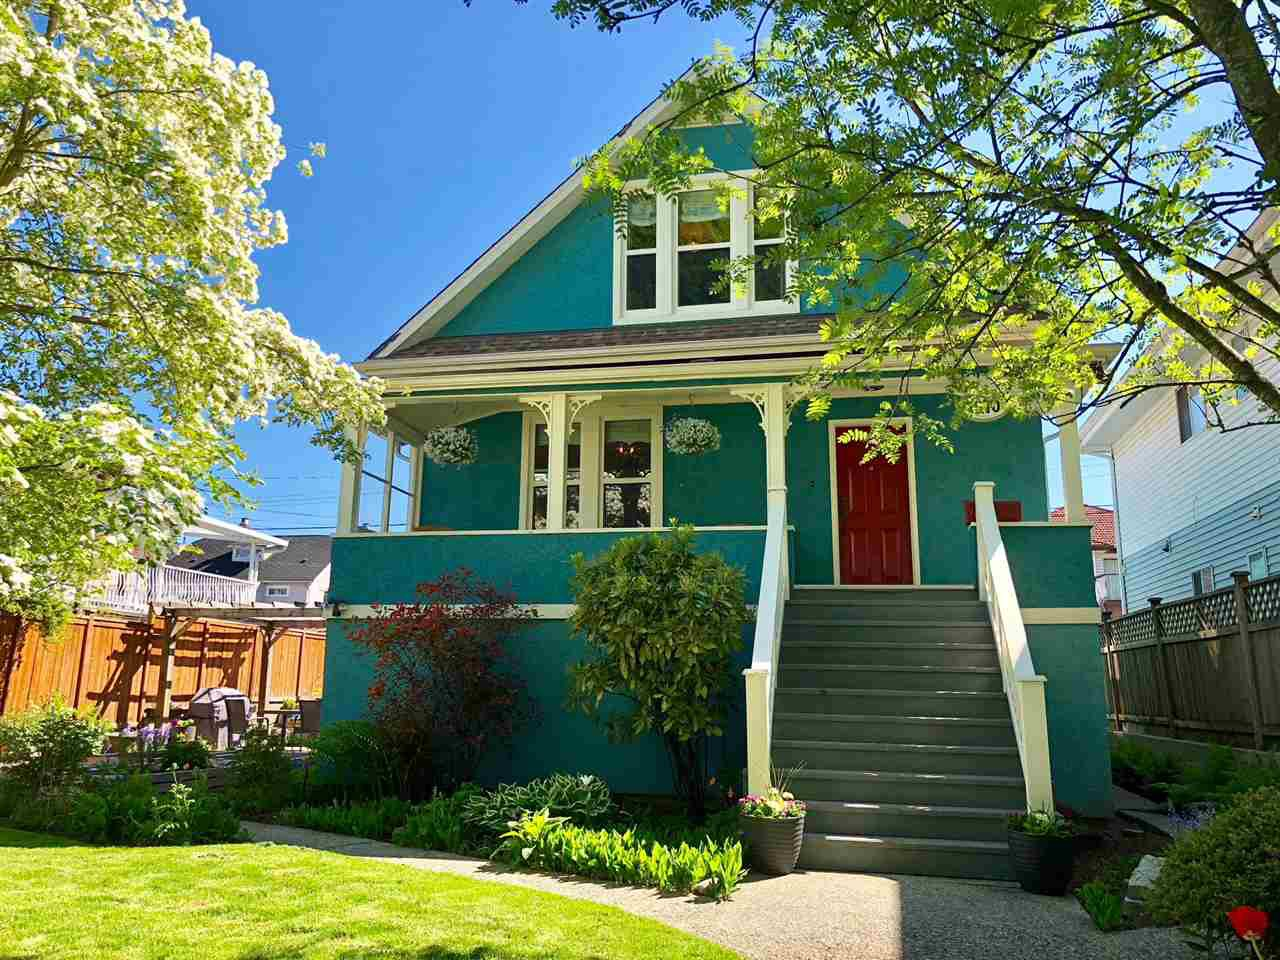 Main Photo: 1870 E 33RD Avenue in Vancouver: Victoria VE House for sale (Vancouver East)  : MLS®# R2273629